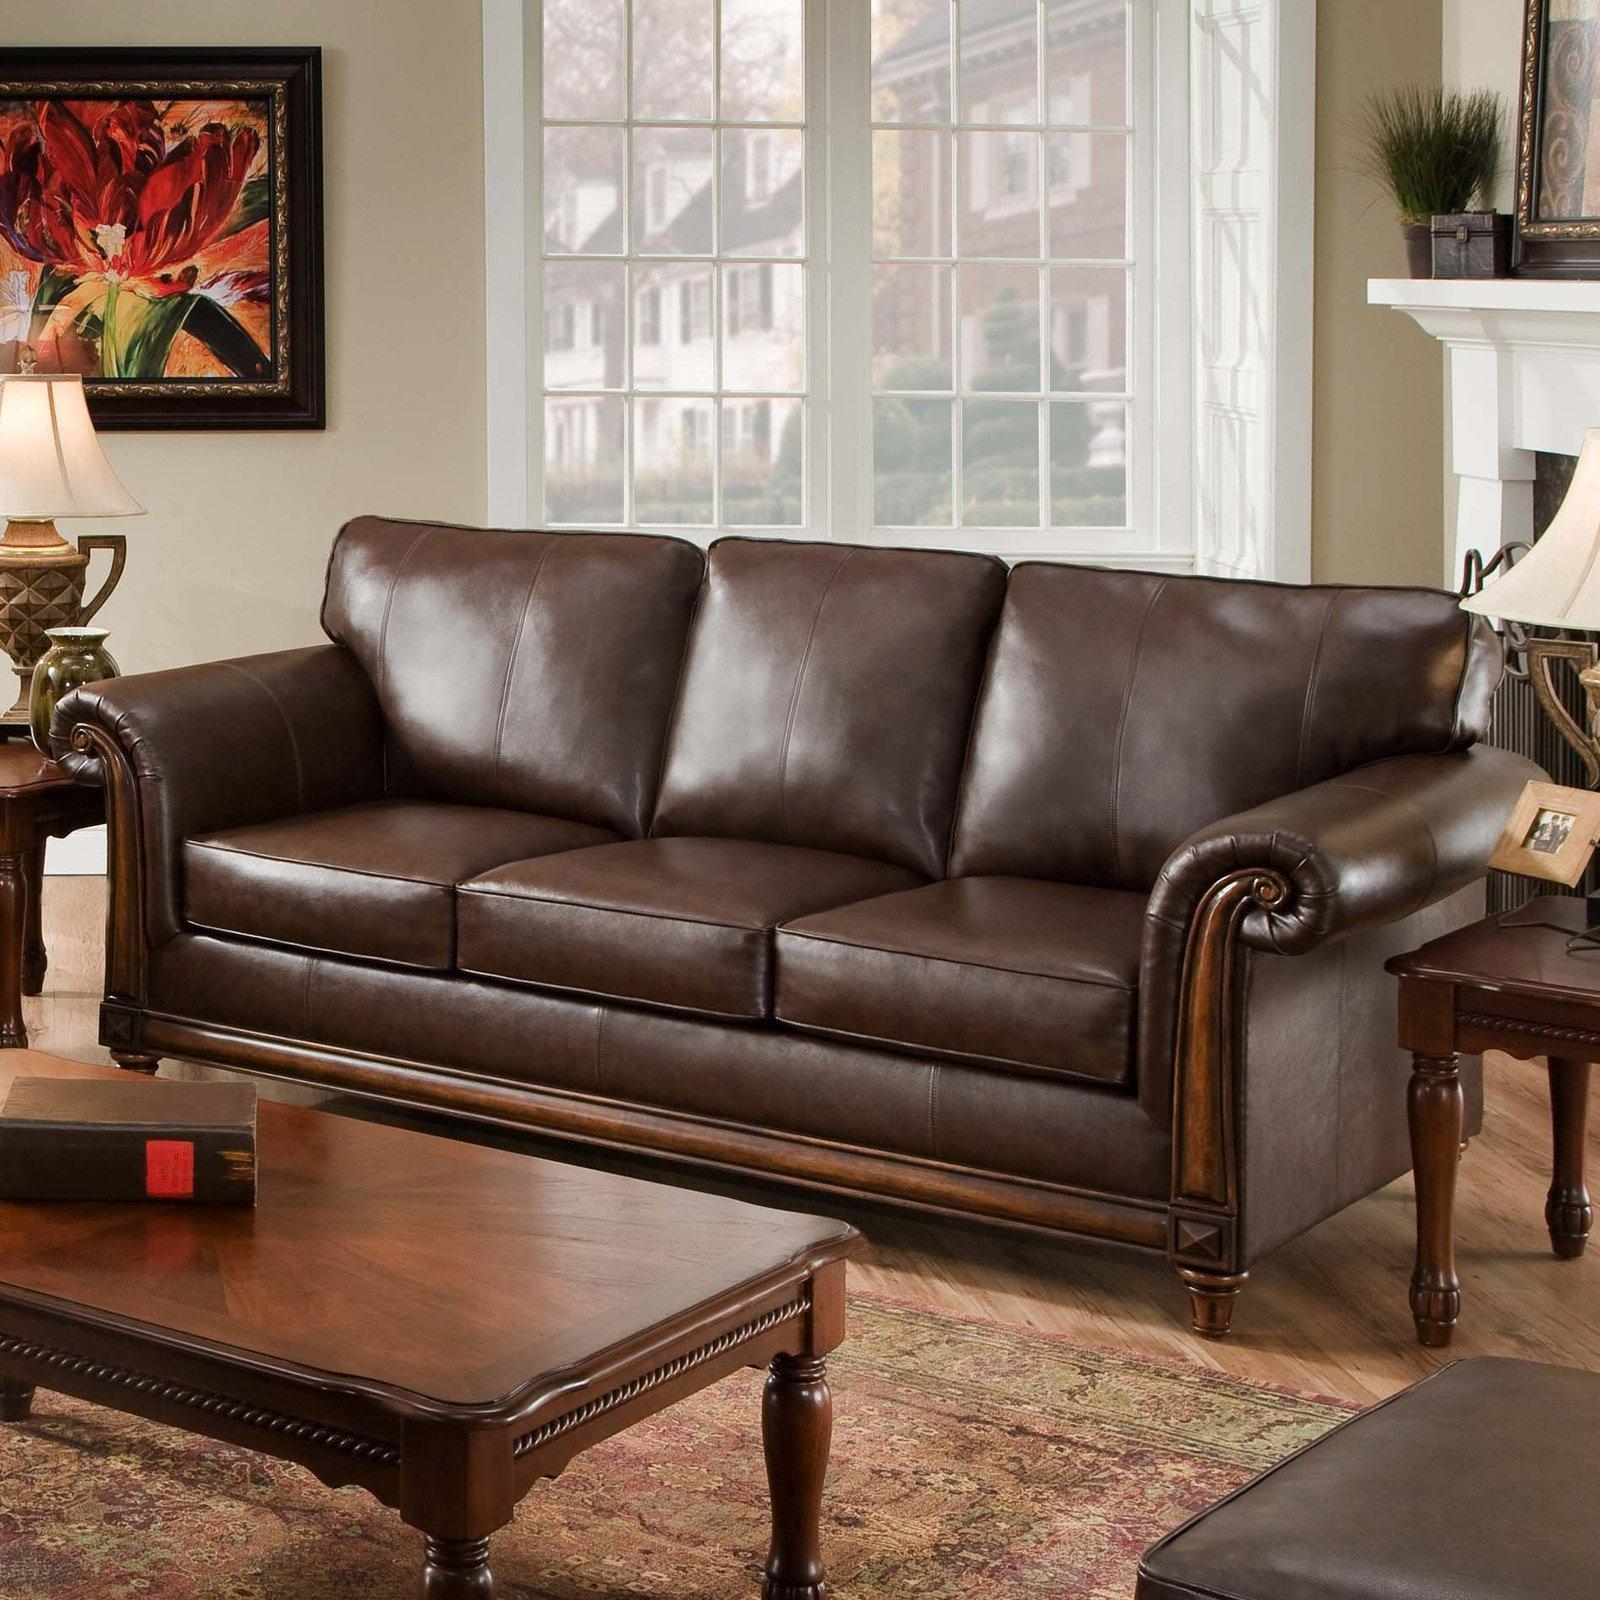 Simmons San Diego Coffee Leather Sofa | Hayneedle Within Leather Sectional San Diego (View 2 of 20)